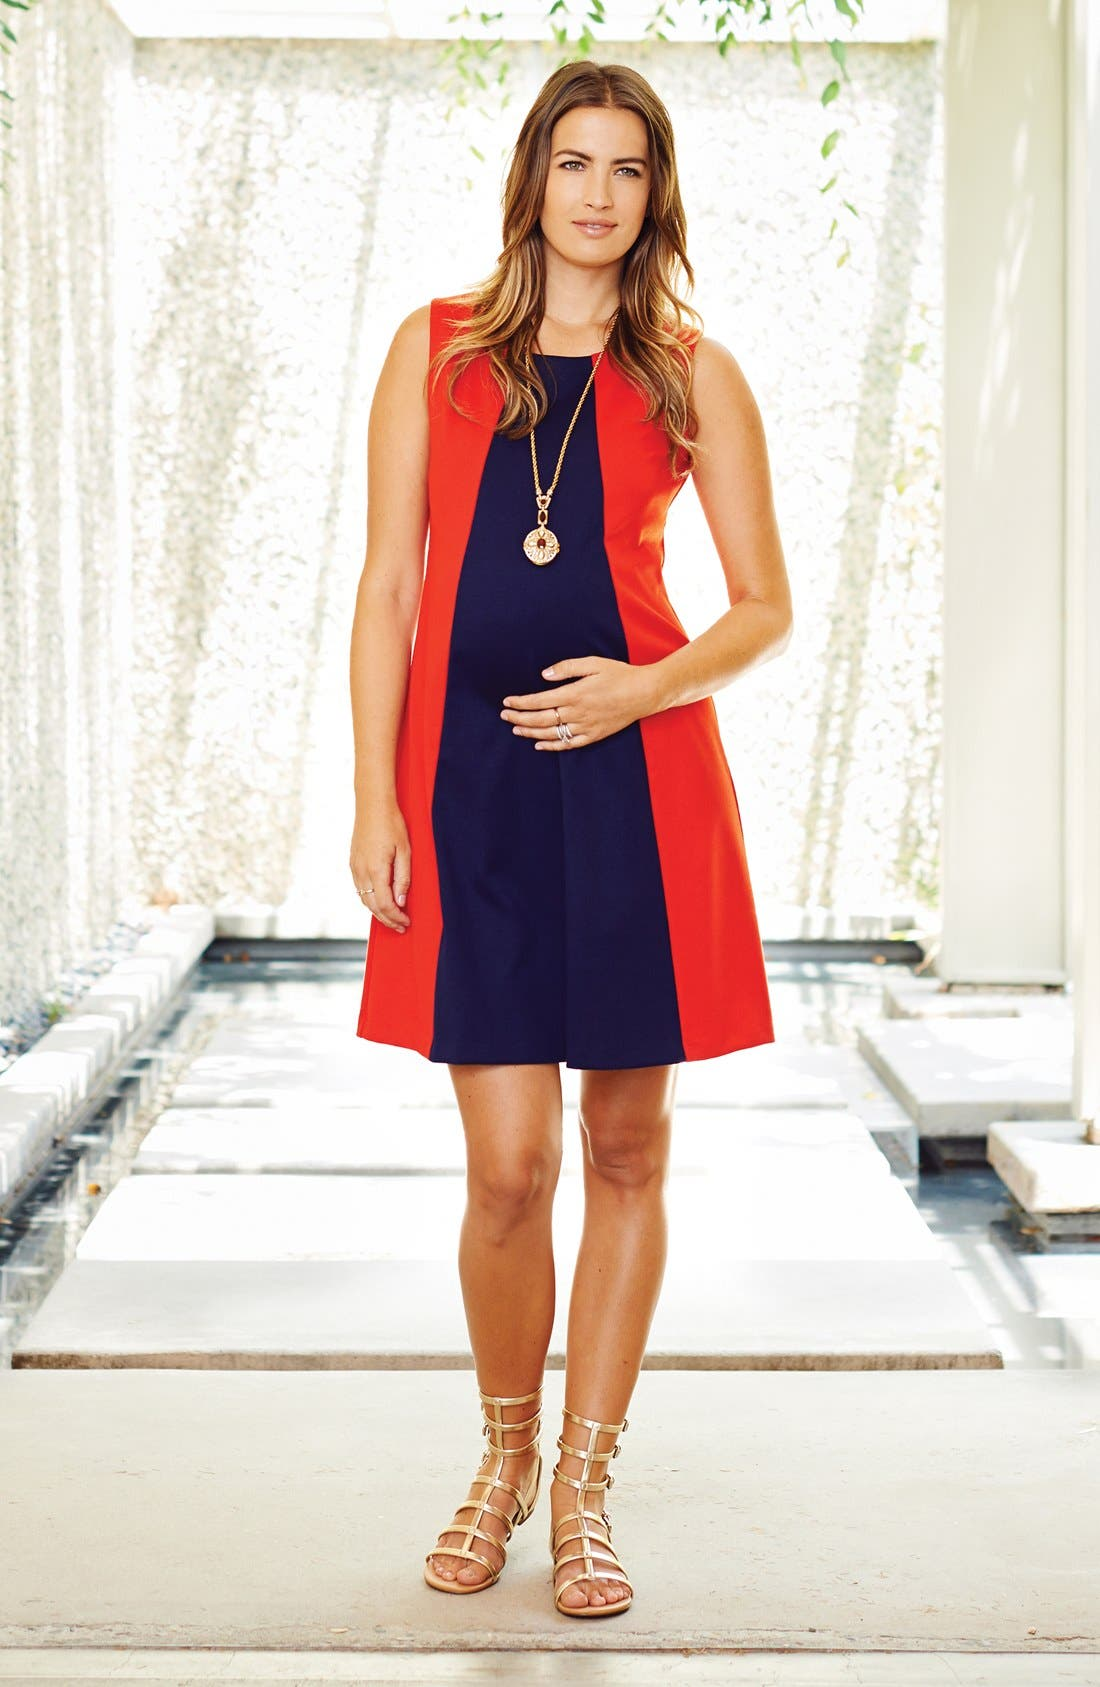 'Pyramid' Maternity Dress,                             Alternate thumbnail 2, color,                             Red/ Navy